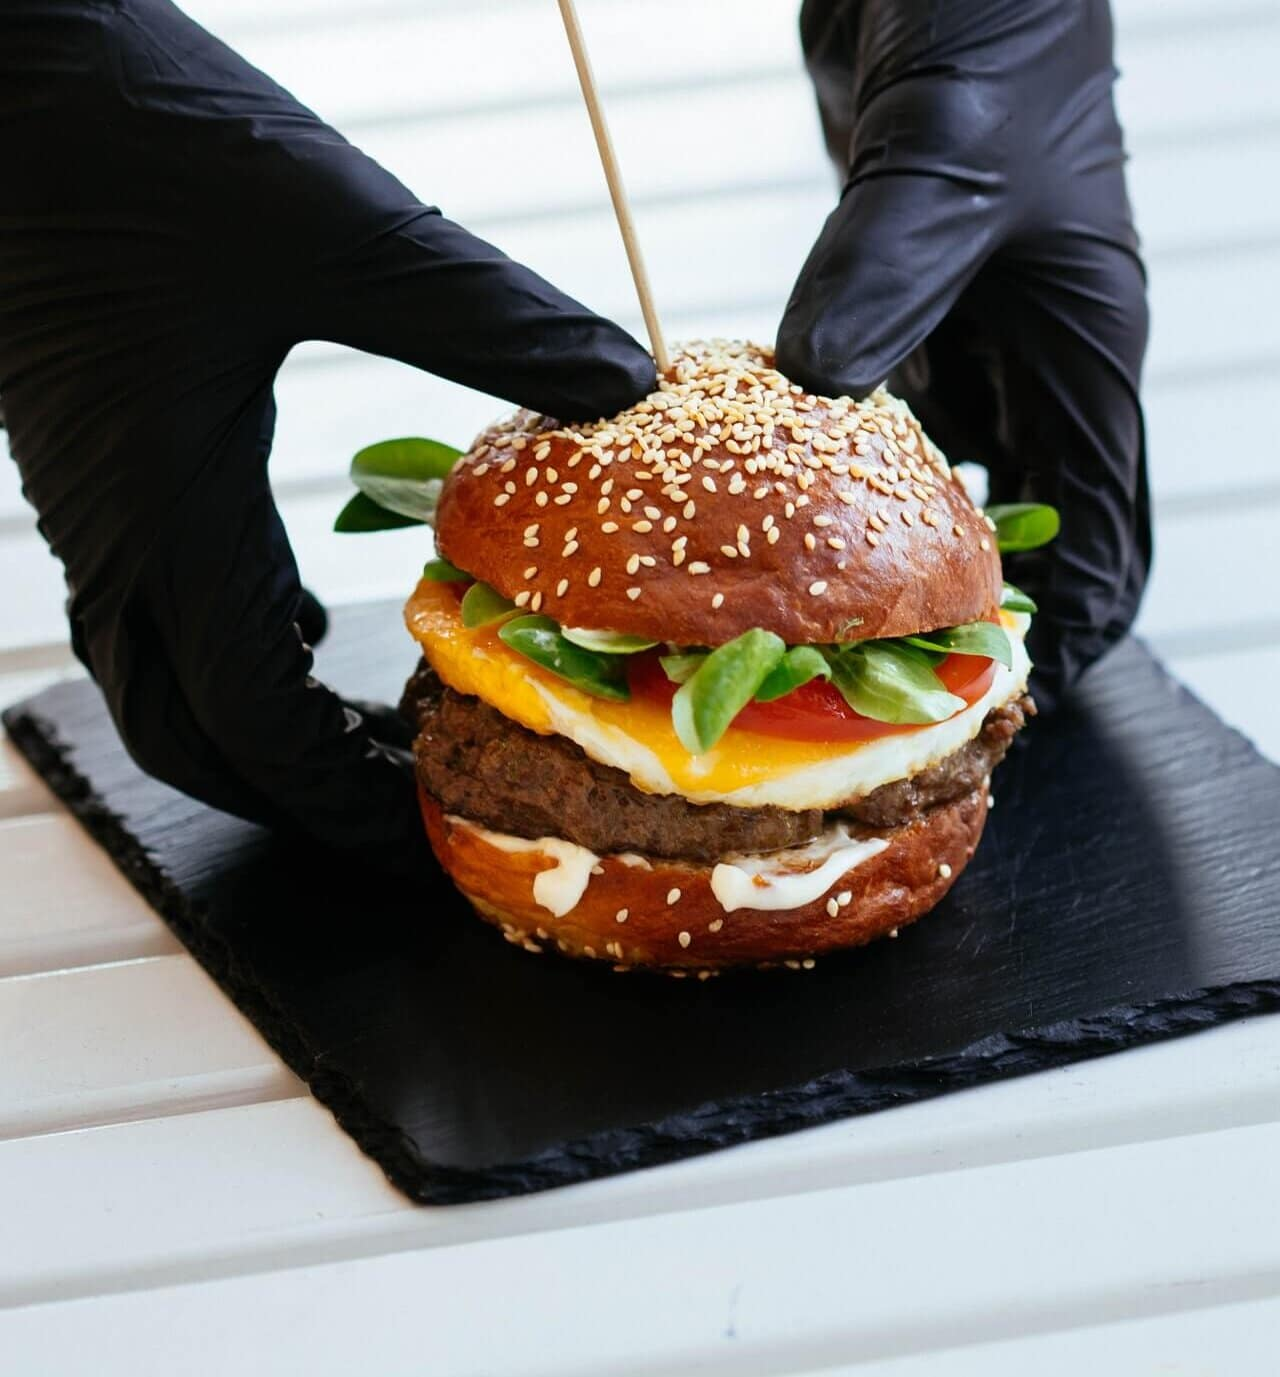 Unilever launched plant-based meat - food tech news in asia